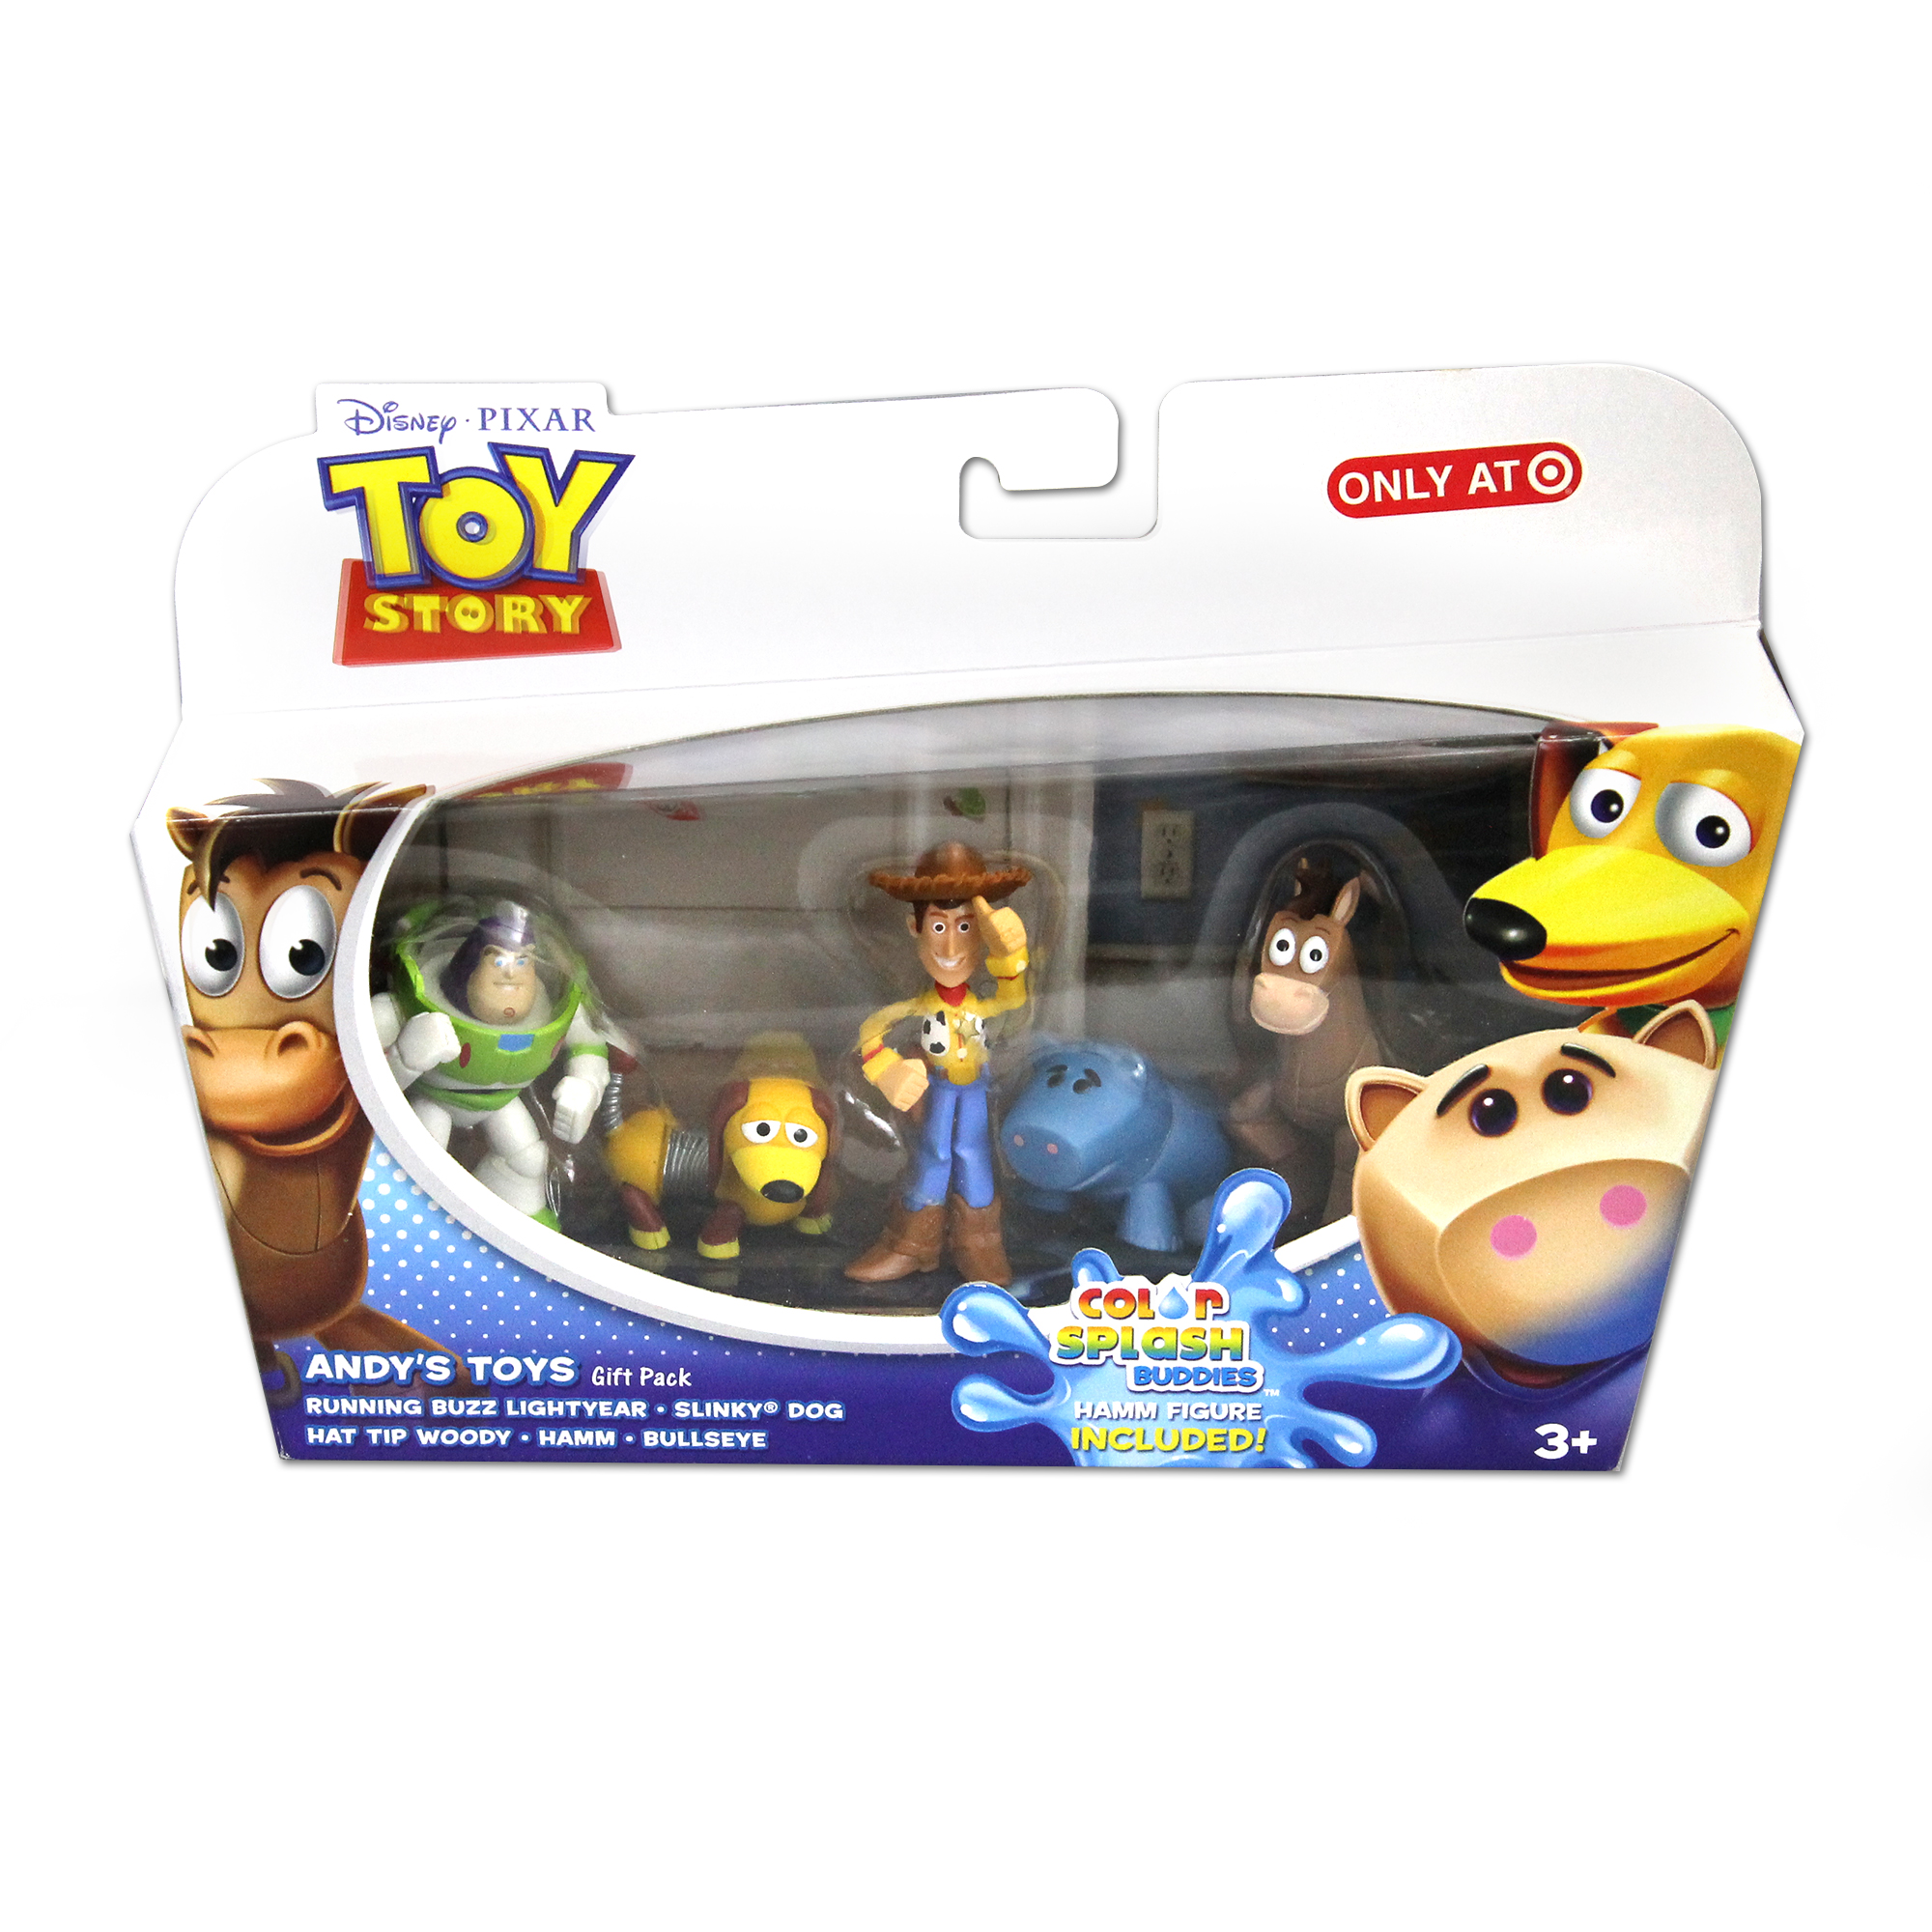 Toy Story - Andy's Toys Gift Pack - Running Buzz Lightyear, Slinky Dog ...